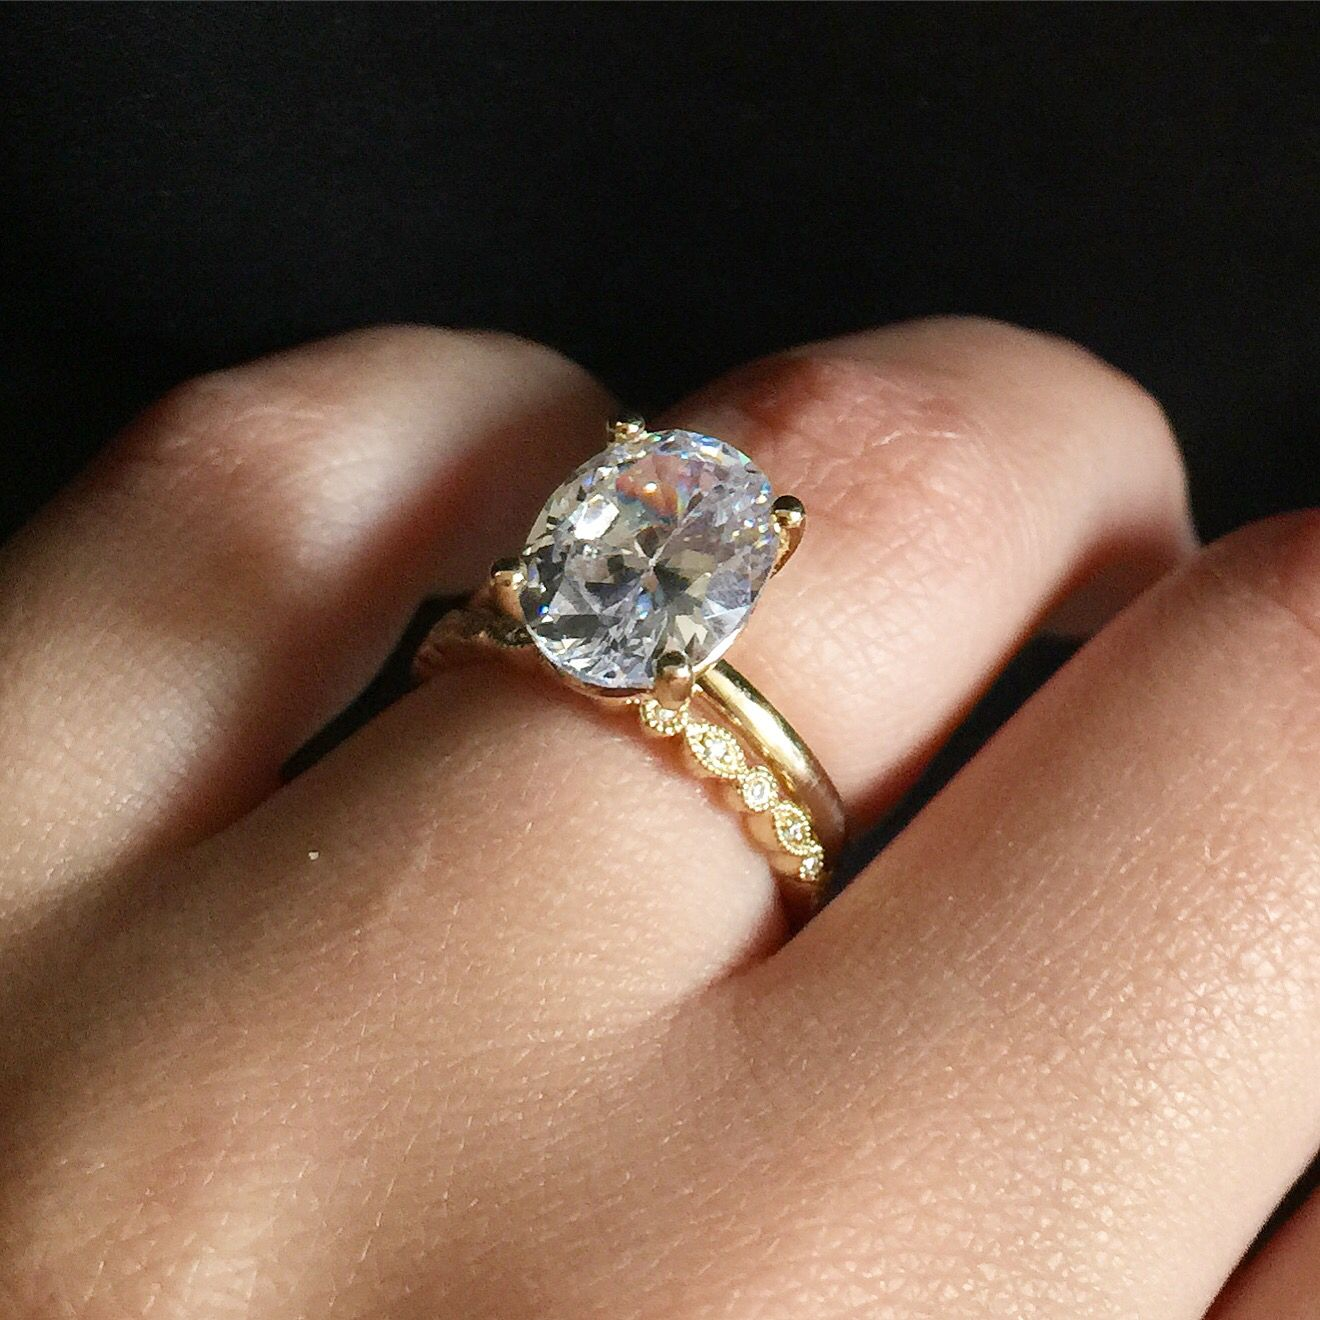 3 carat oval diamond engagement ring Solitaire with